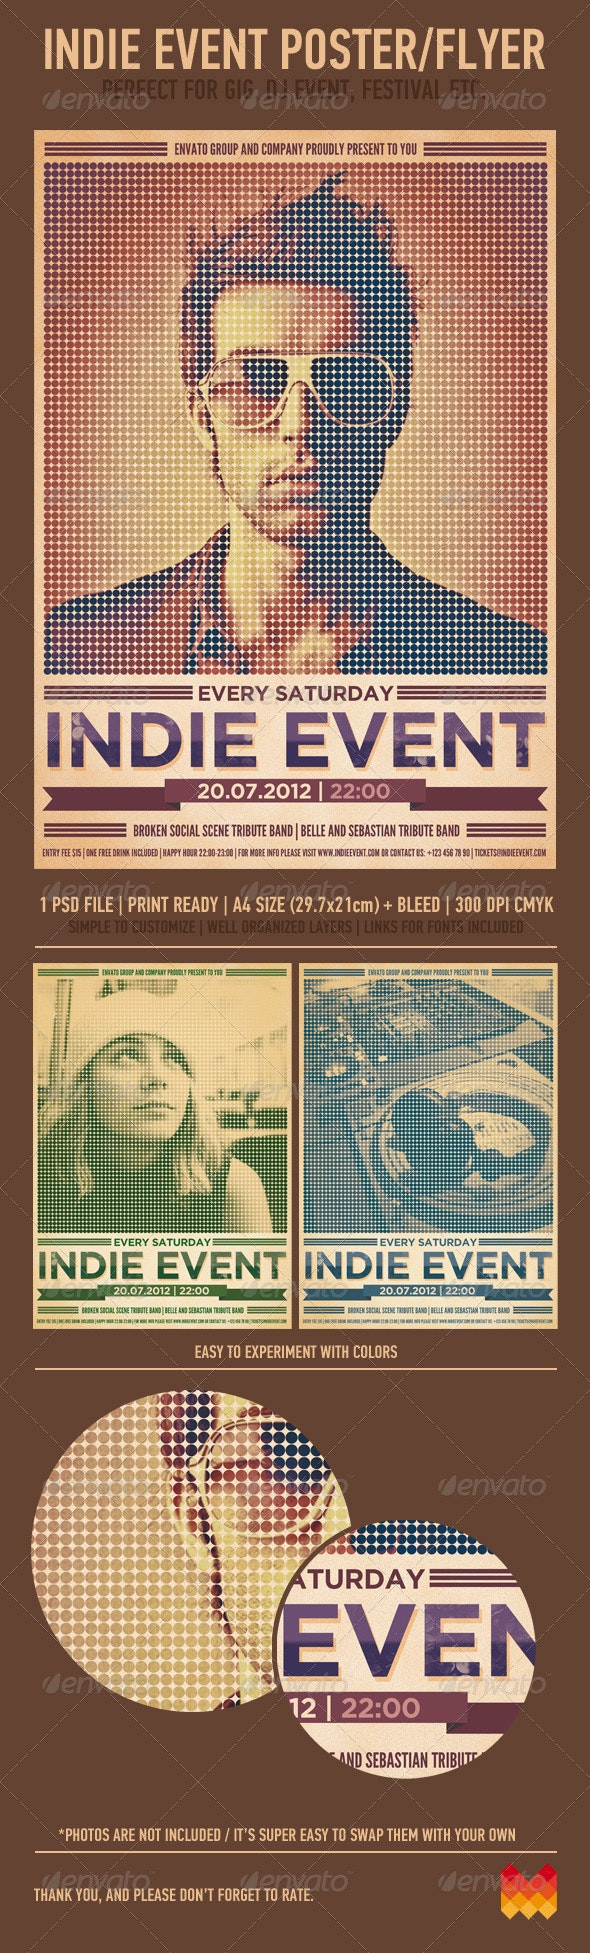 Indie Event Flyer/Poster - Events Flyers